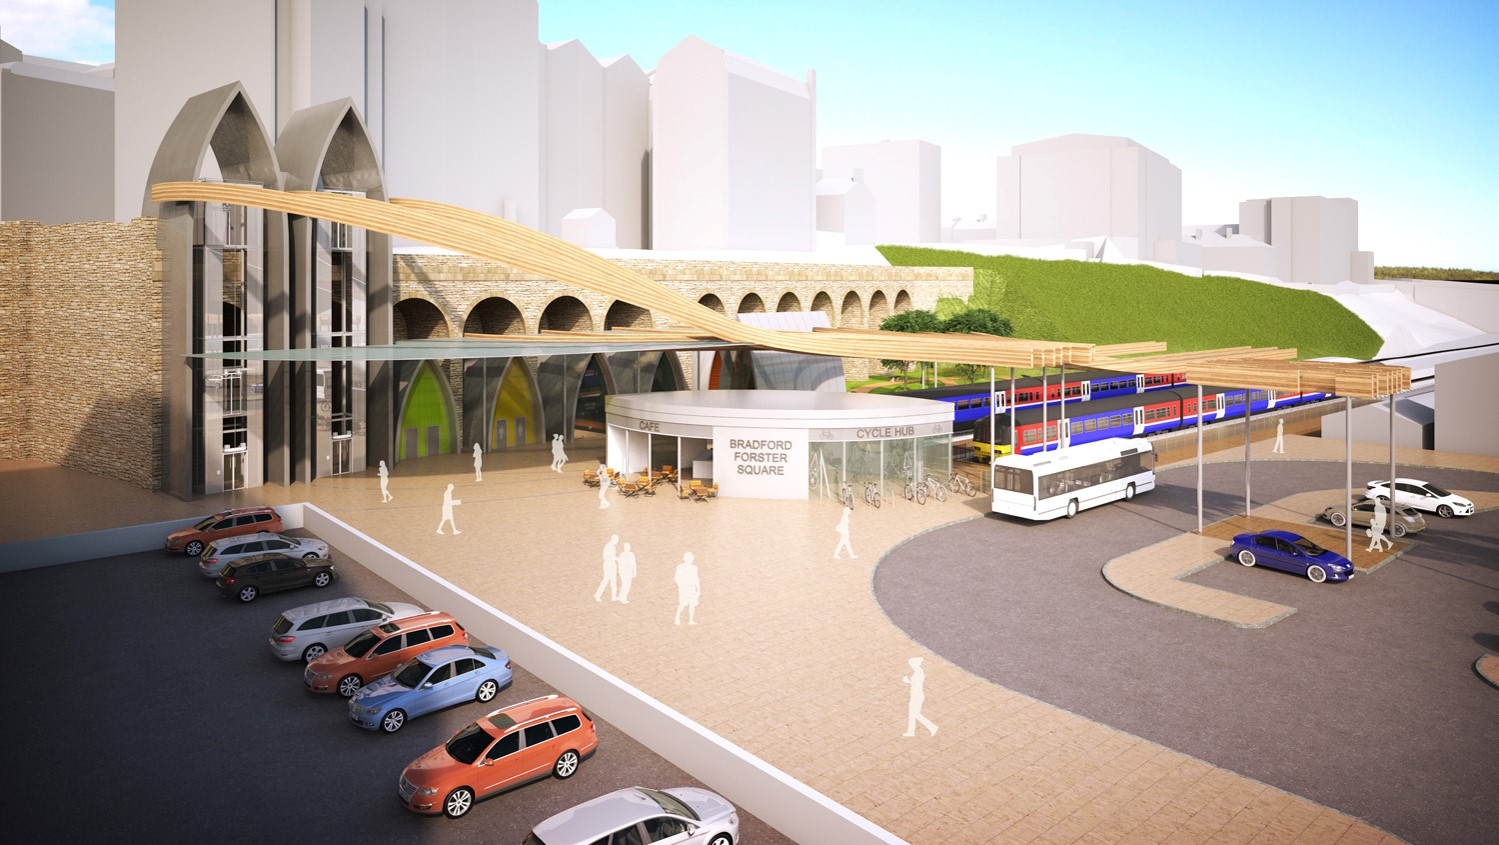 An artist's impression of how the new Forster Square Station entrance could look.